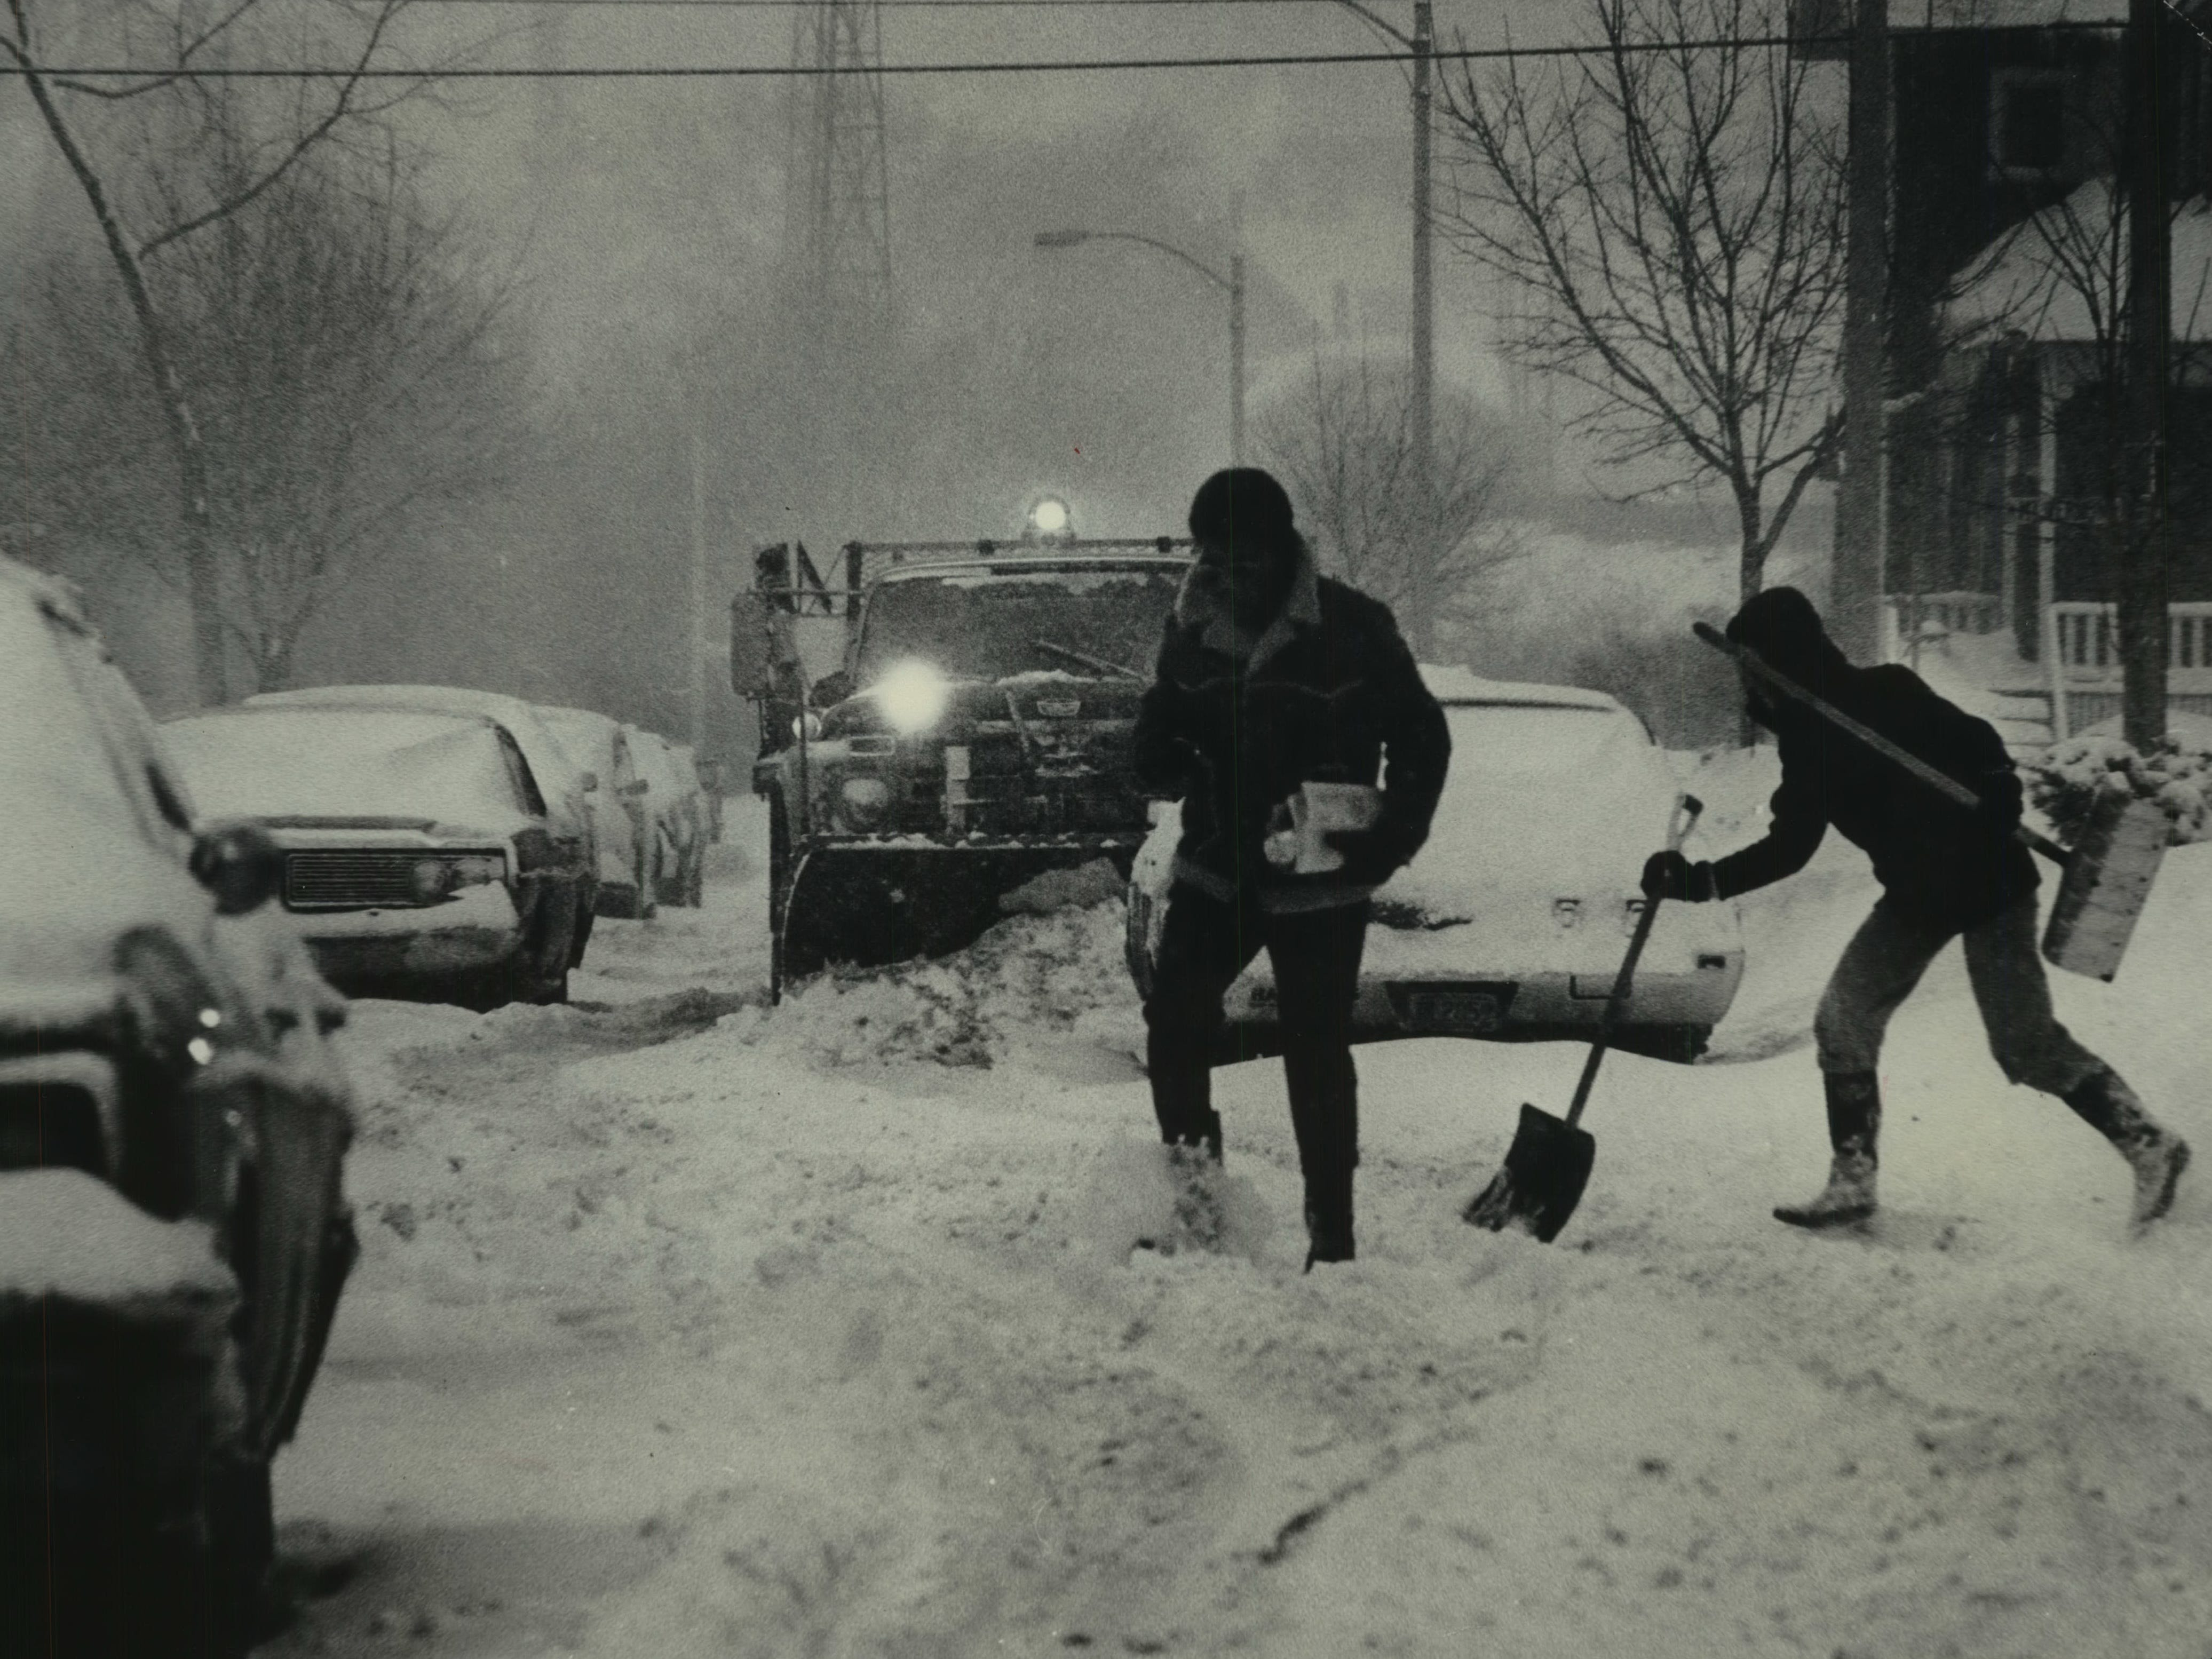 A pedestrian and a snow shoveler dash across North 37th Street as a plow works the Merrill Park neighborhood of Milwaukee on Jan. 24, 1979. The snowstorm was the third major winter blast to hit Milwaukee that month. This photo was published in the Jan. 24, 1979, Milwaukee Journal.